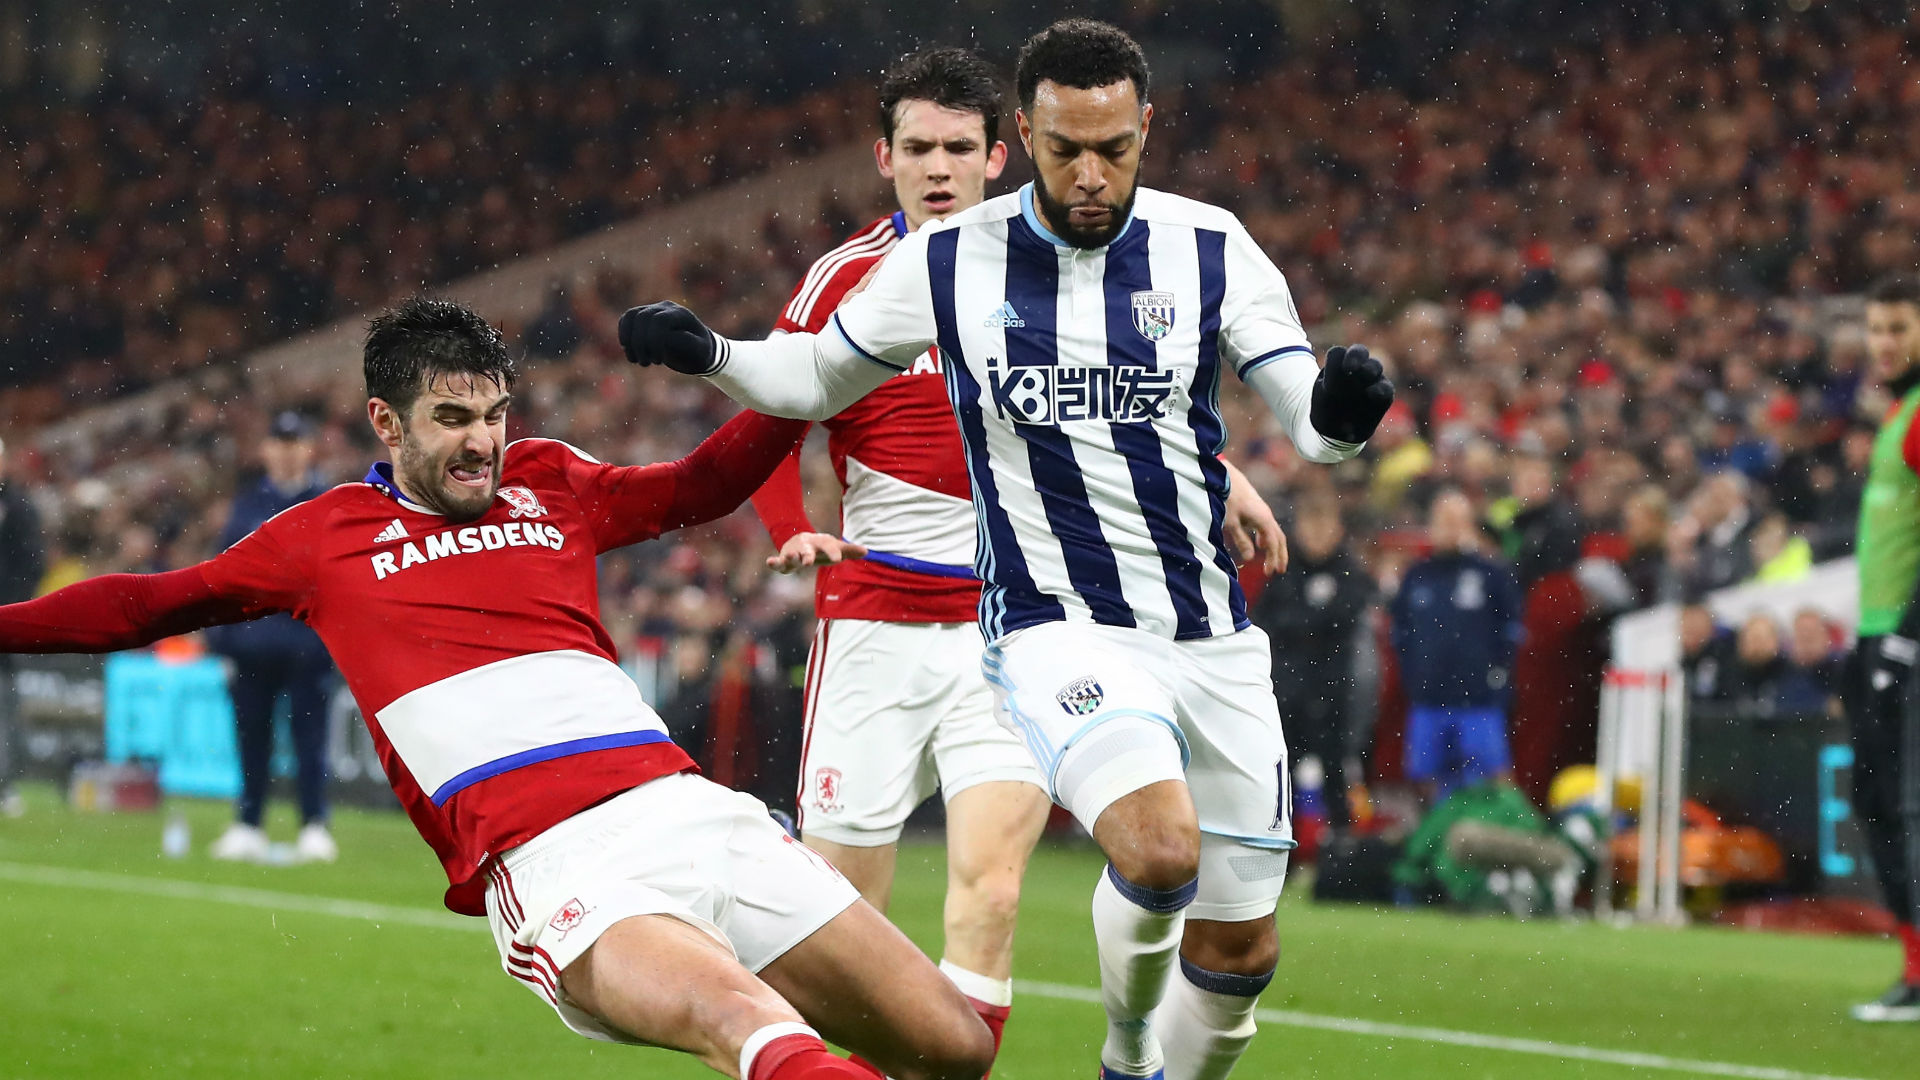 Middlesbrough West Brom